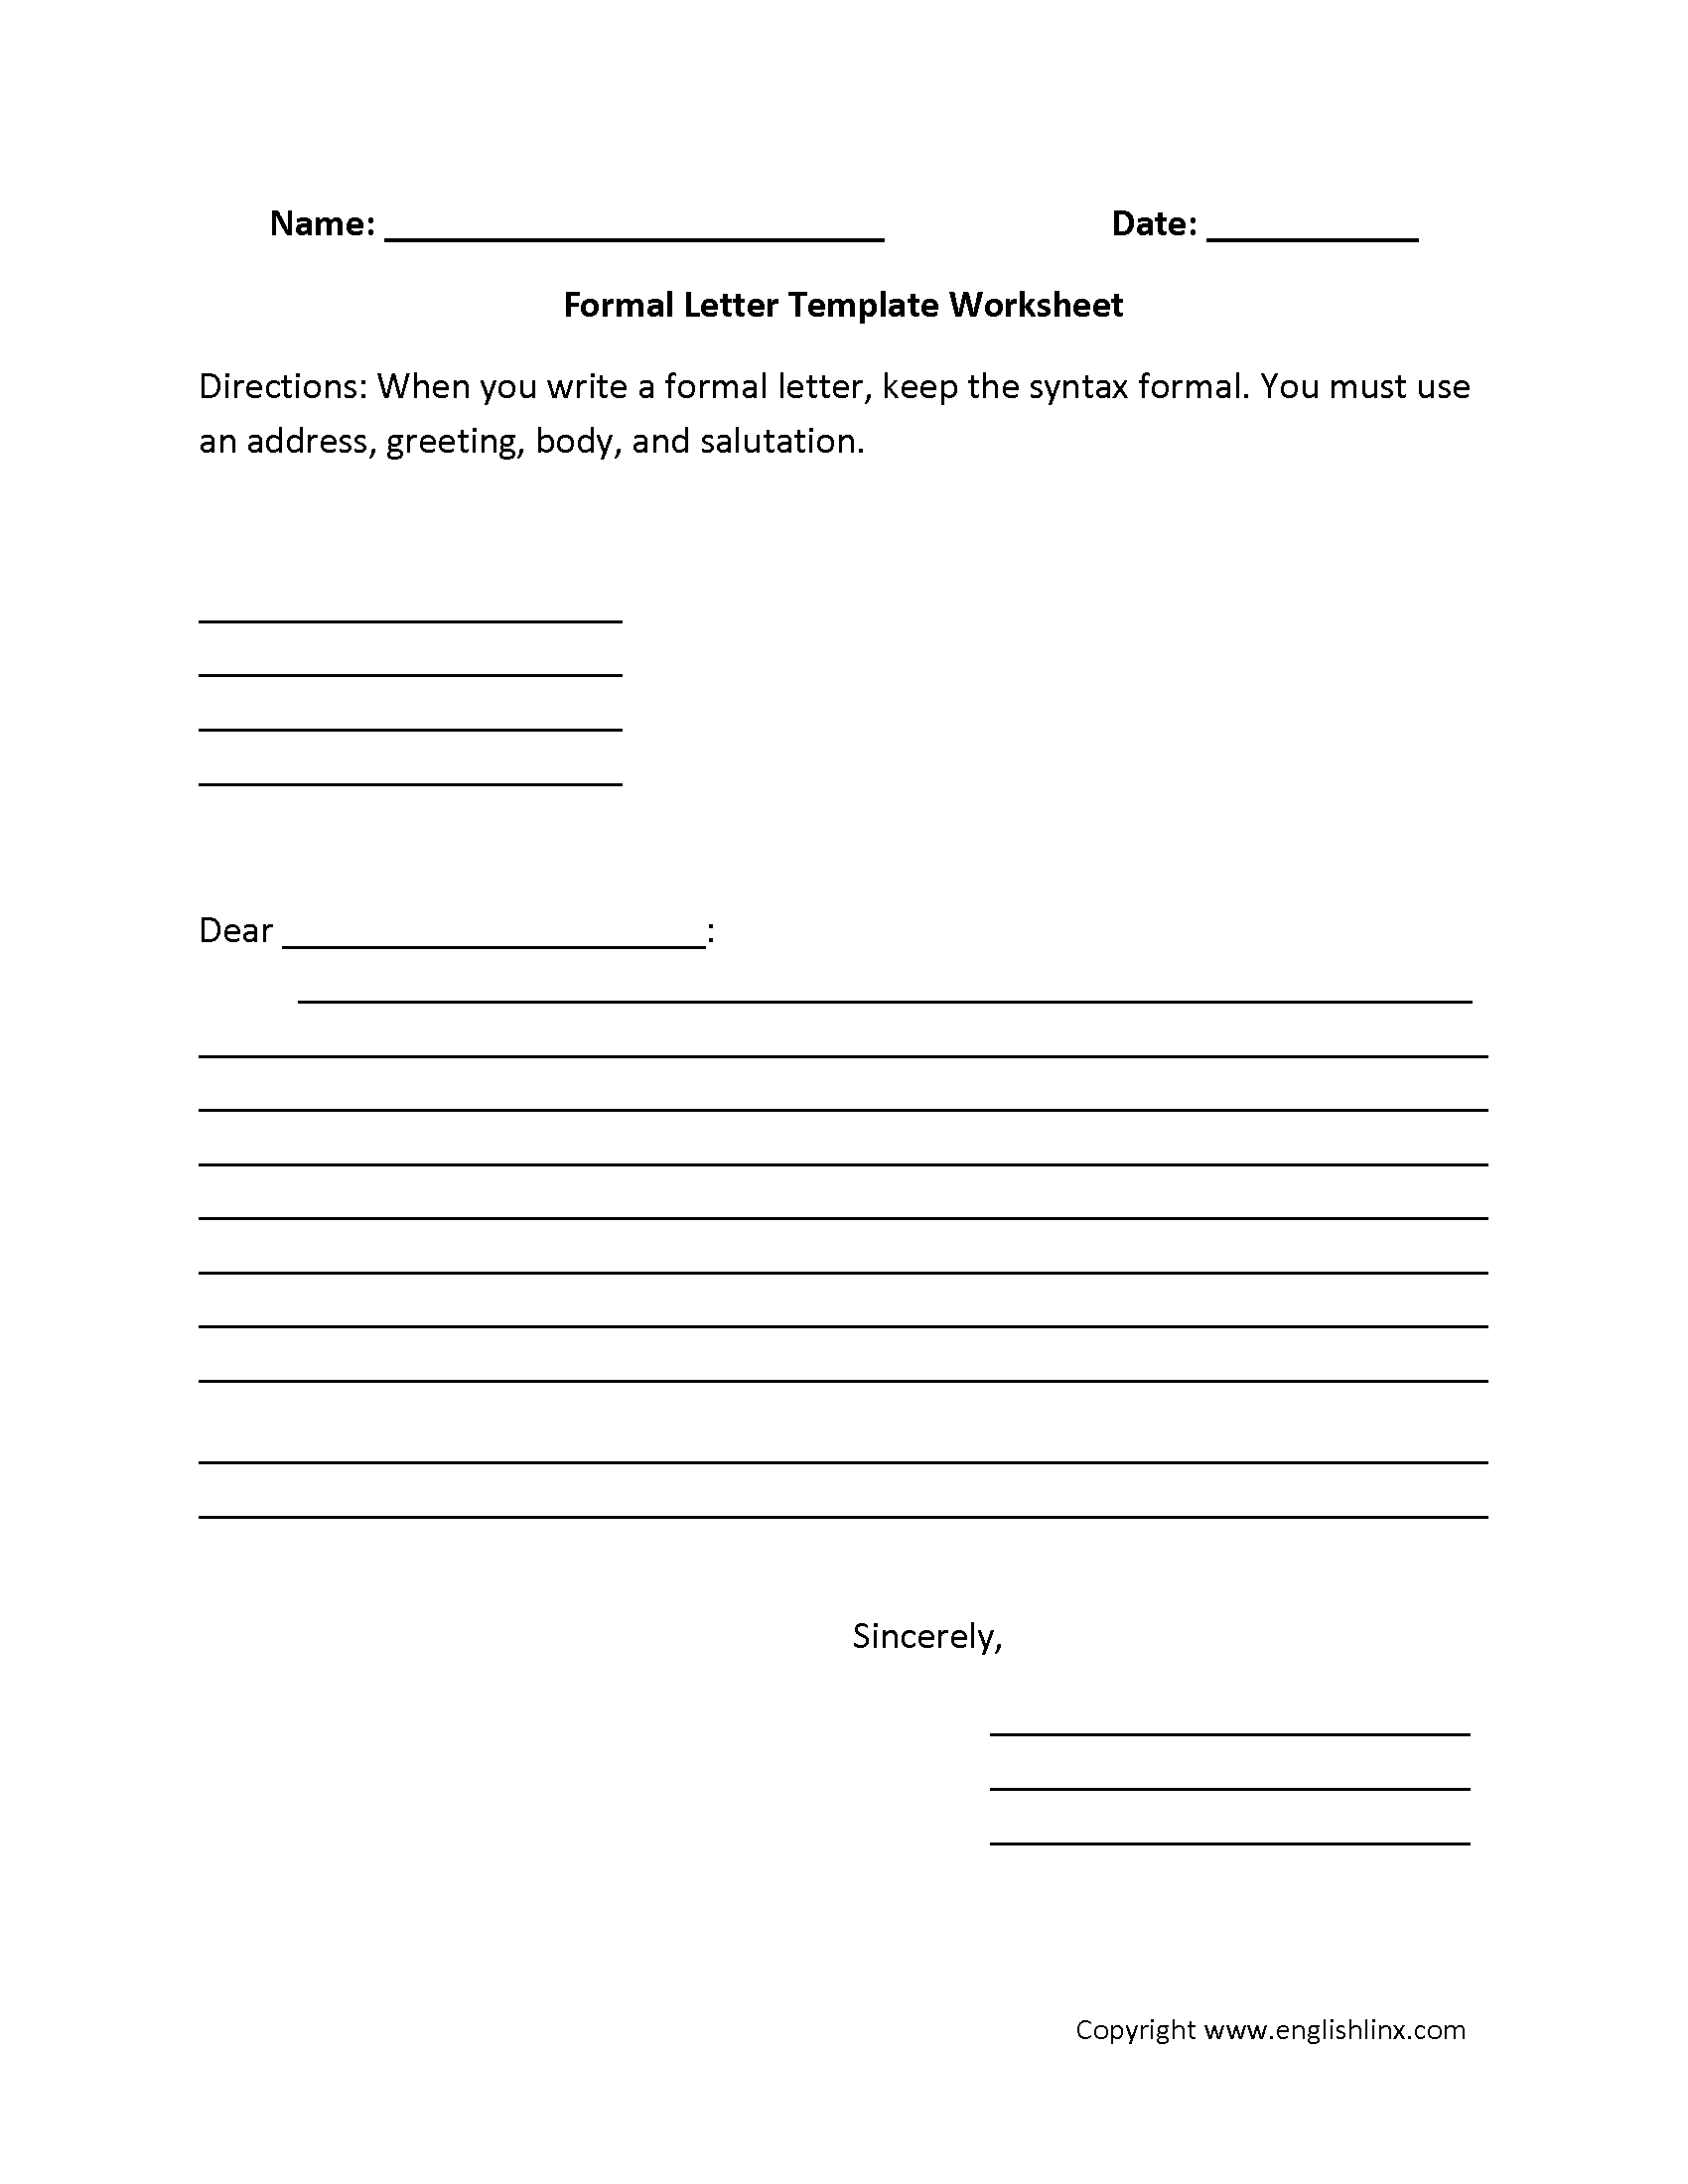 Letter writing worksheets pdf